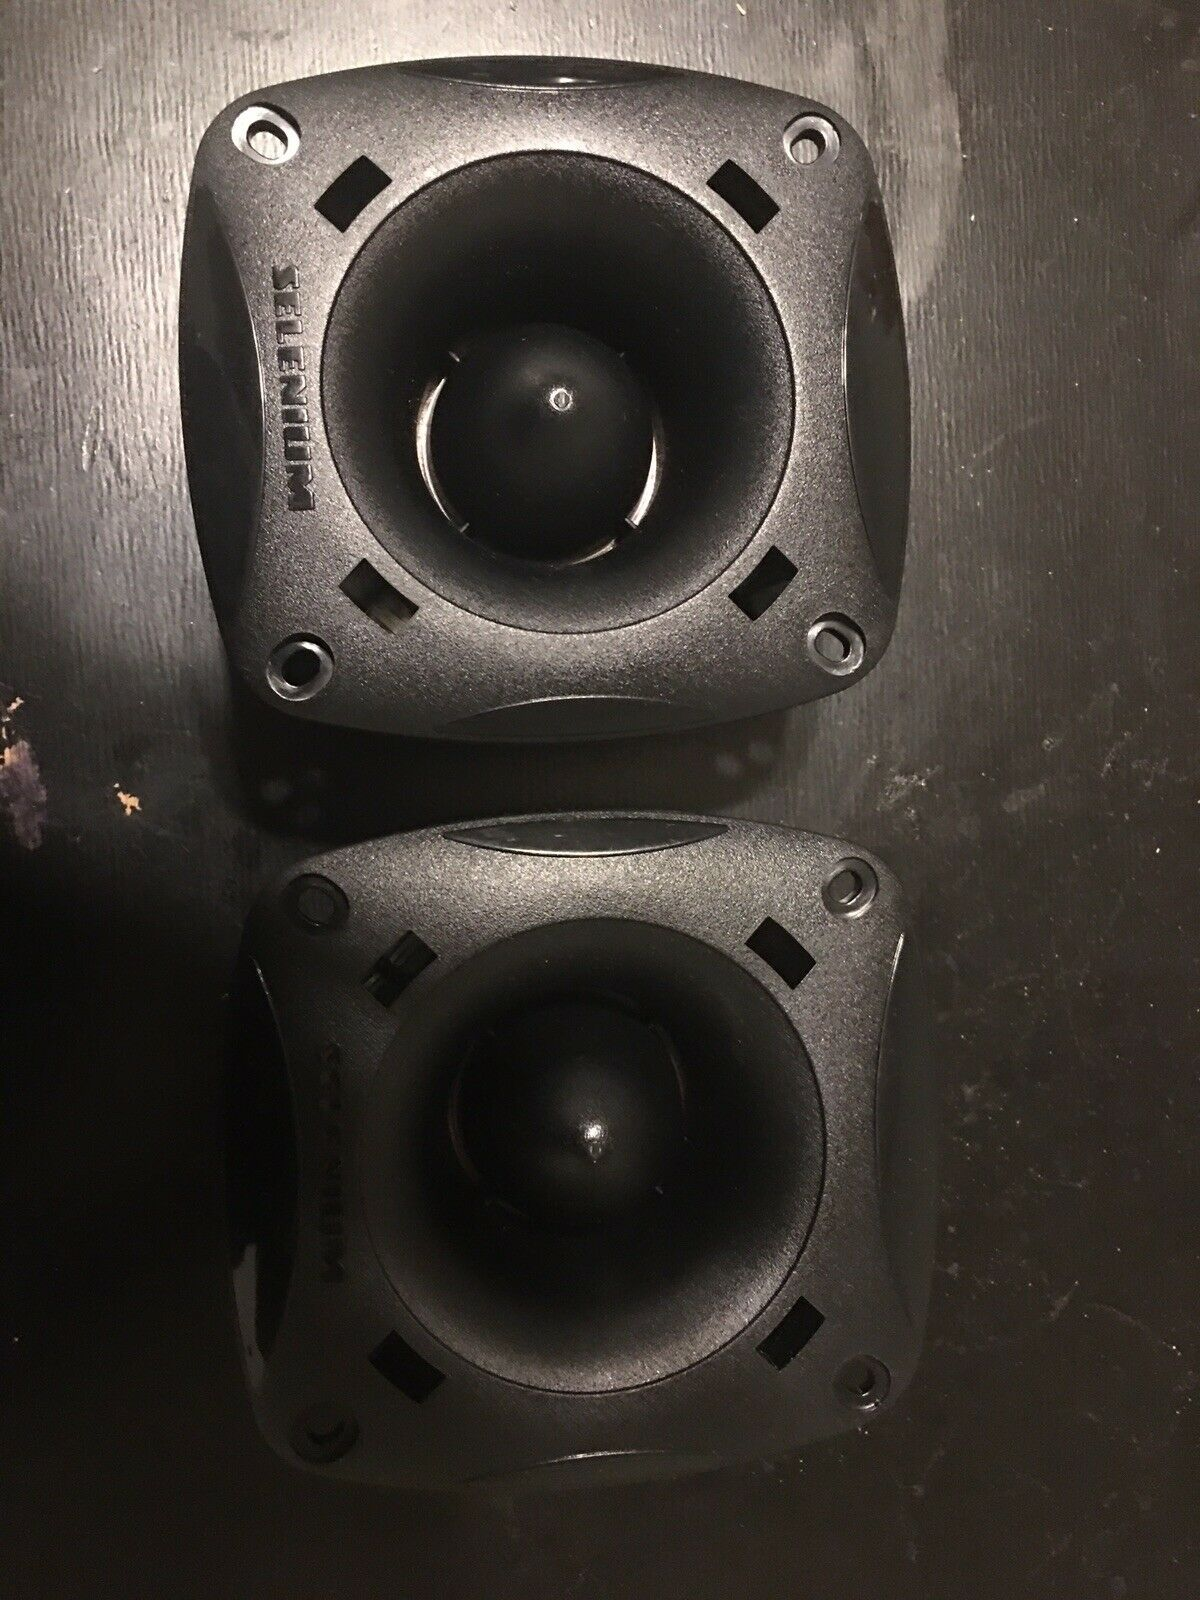 2 AUTHENTIC JBL   Selenium - ST200 Super Tweeter - 8 ohms, Phenolic, 1.75